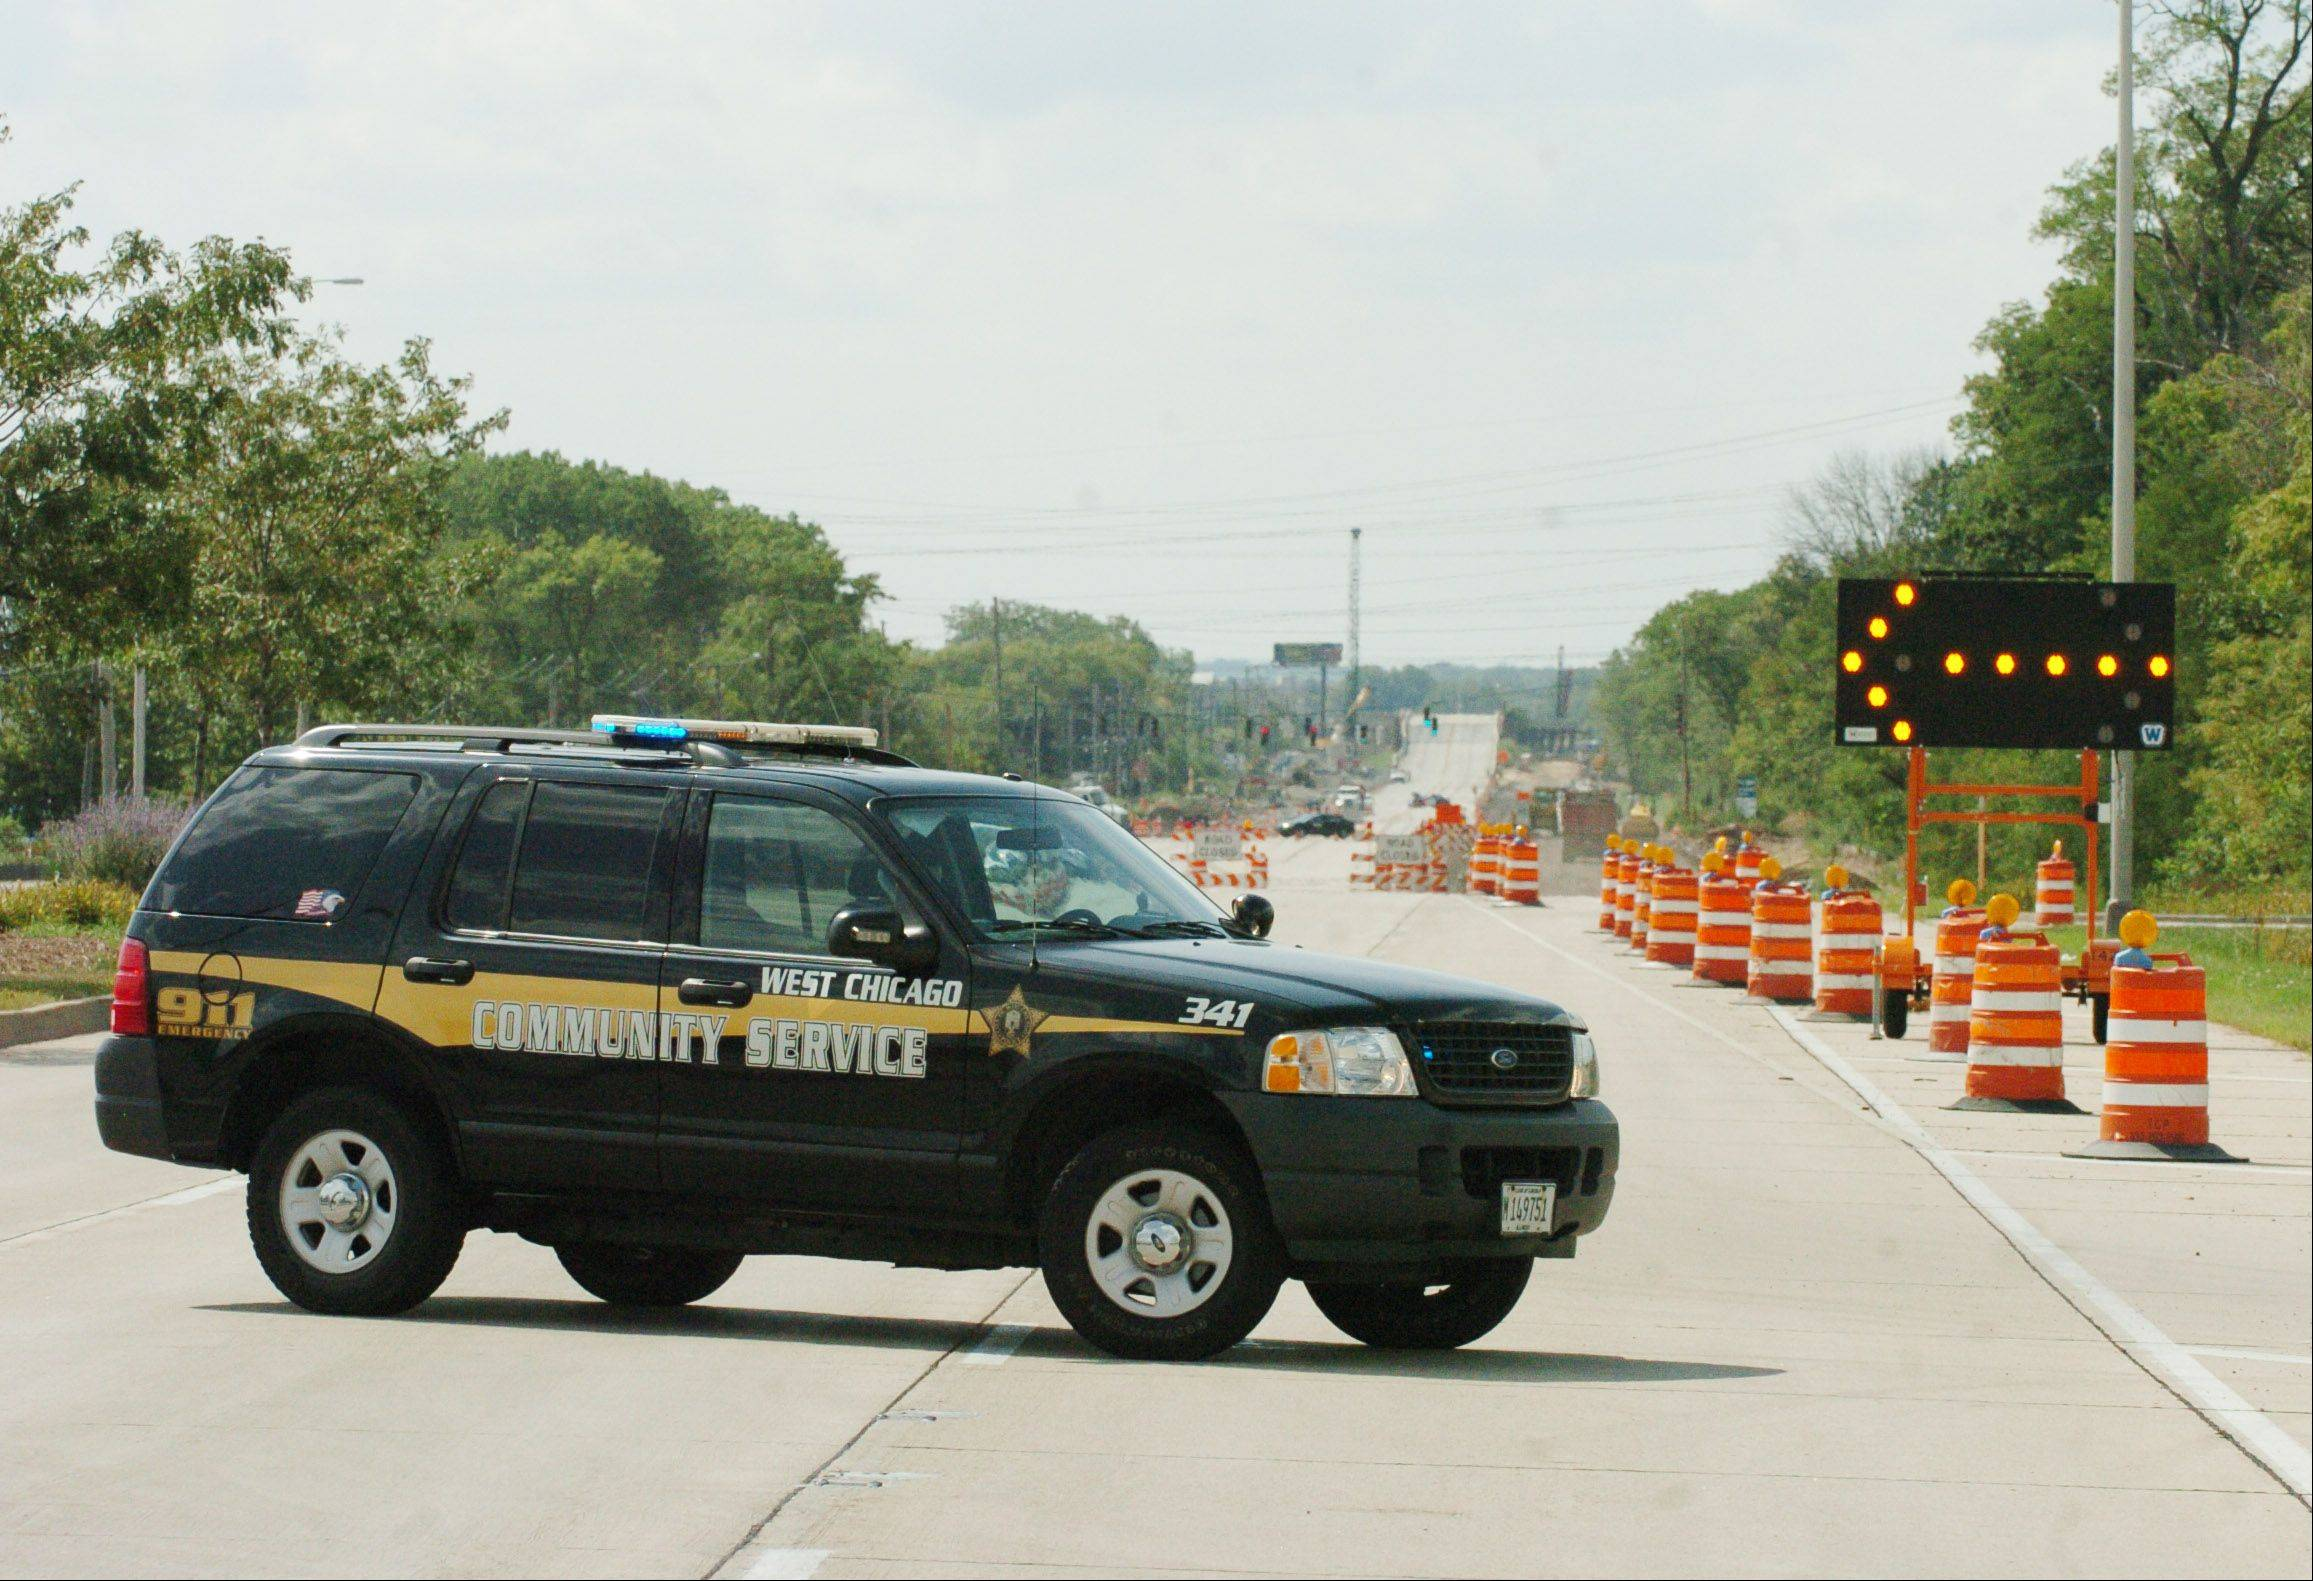 A West Chicago Community officer keeps guard over a gas leak along Route 64 in West Chicago Tuesday. The road was closed from Kautz to Powis. Motorists were encouraged to take alternate routes.